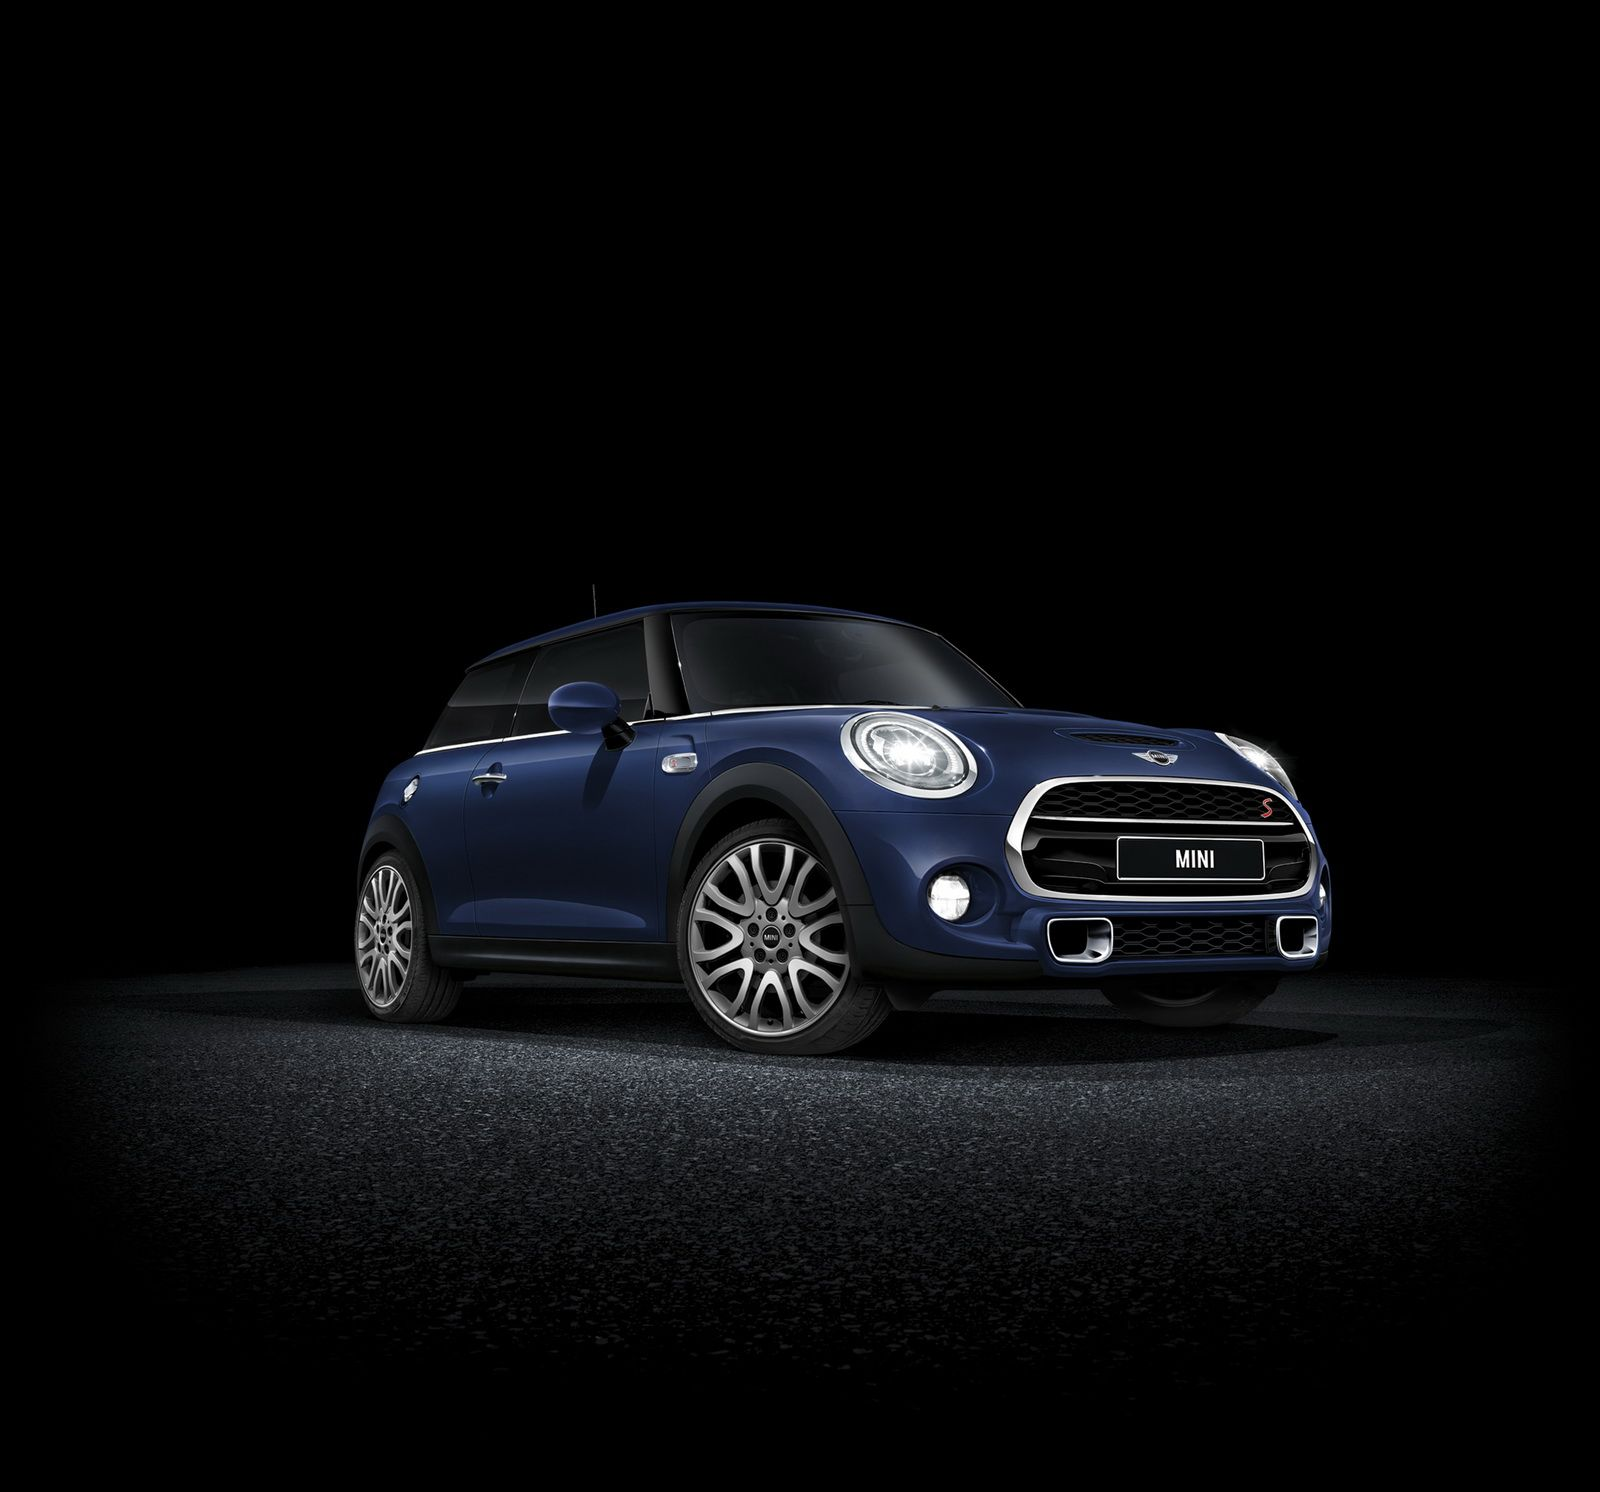 New Limited Edition Cooper S Jermyn Is Mini S Latest Offering To Japan Carscoops Mini Cooper S Mini Cooper Mini